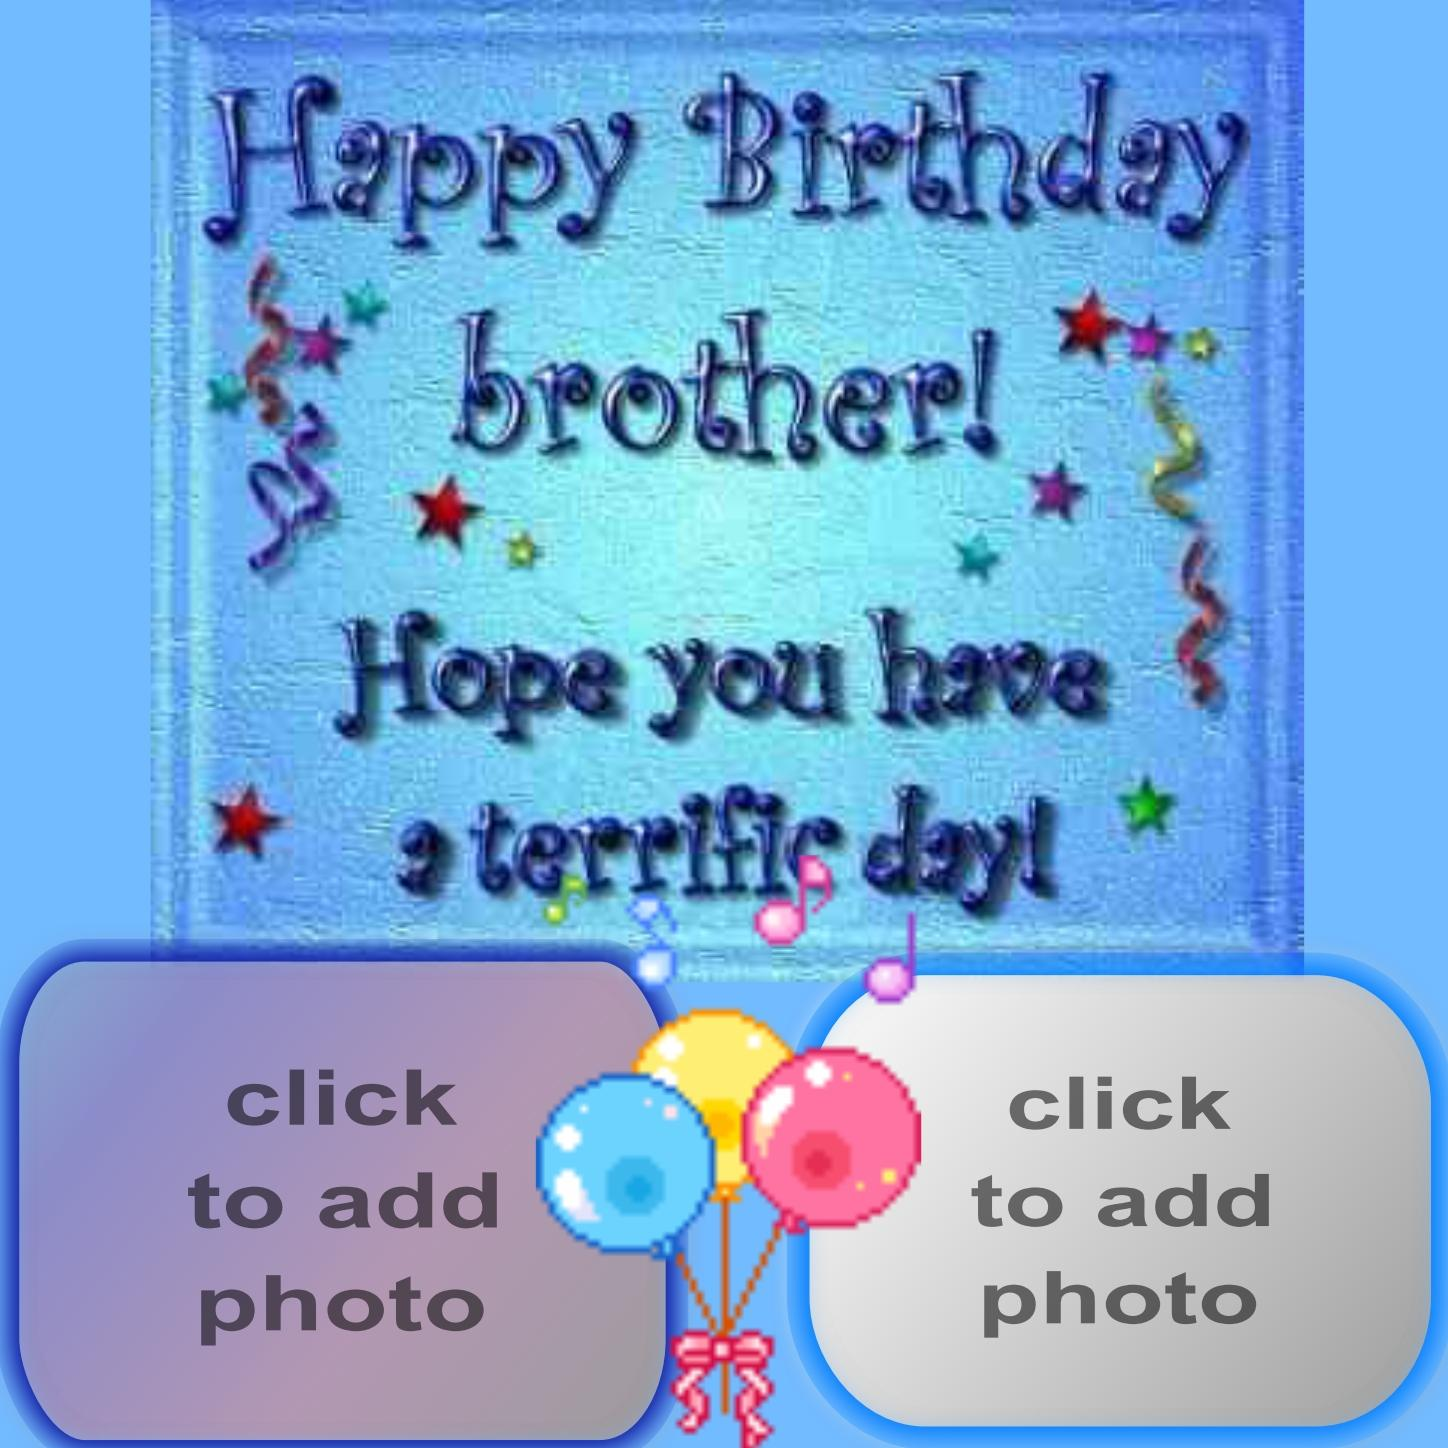 Judys birthday frames 2008 september happy birthday brother judys birthday frames 2008 september happy birthday brother hope you have a terrifie day judy kristyandbryce Images